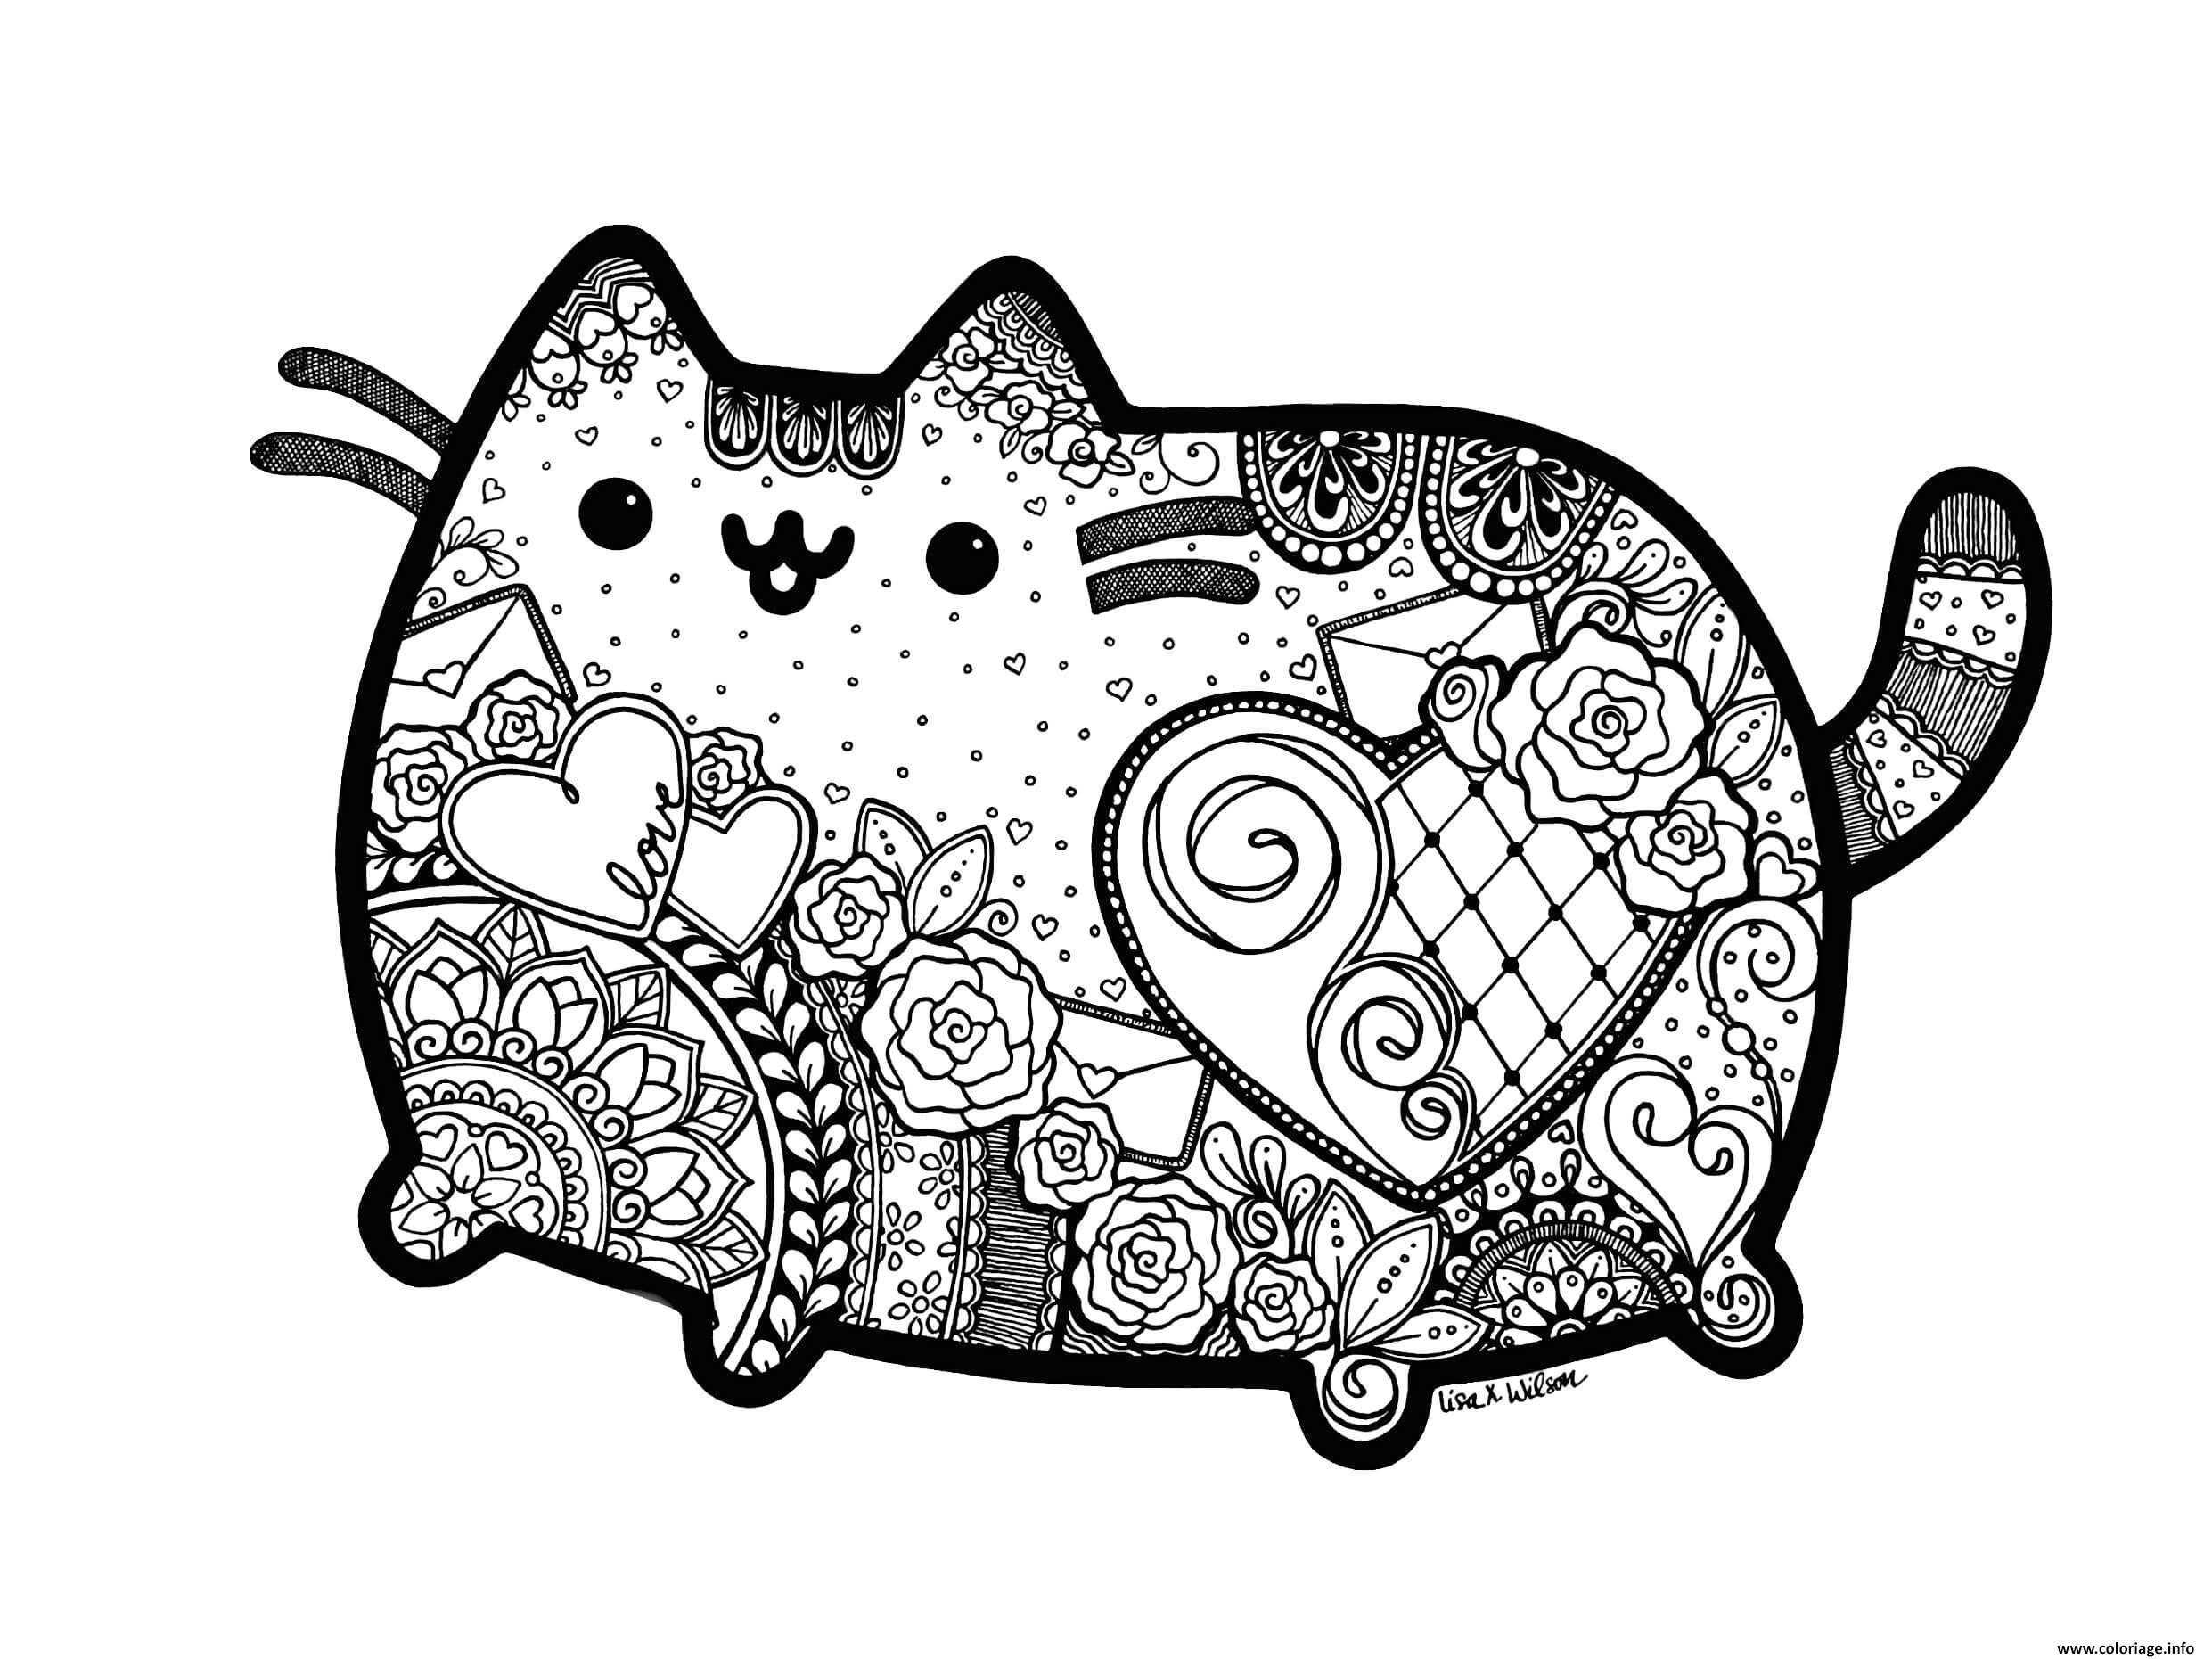 Dessin pusheen the cat adult inspired zentangle with mandala Coloriage Gratuit à Imprimer